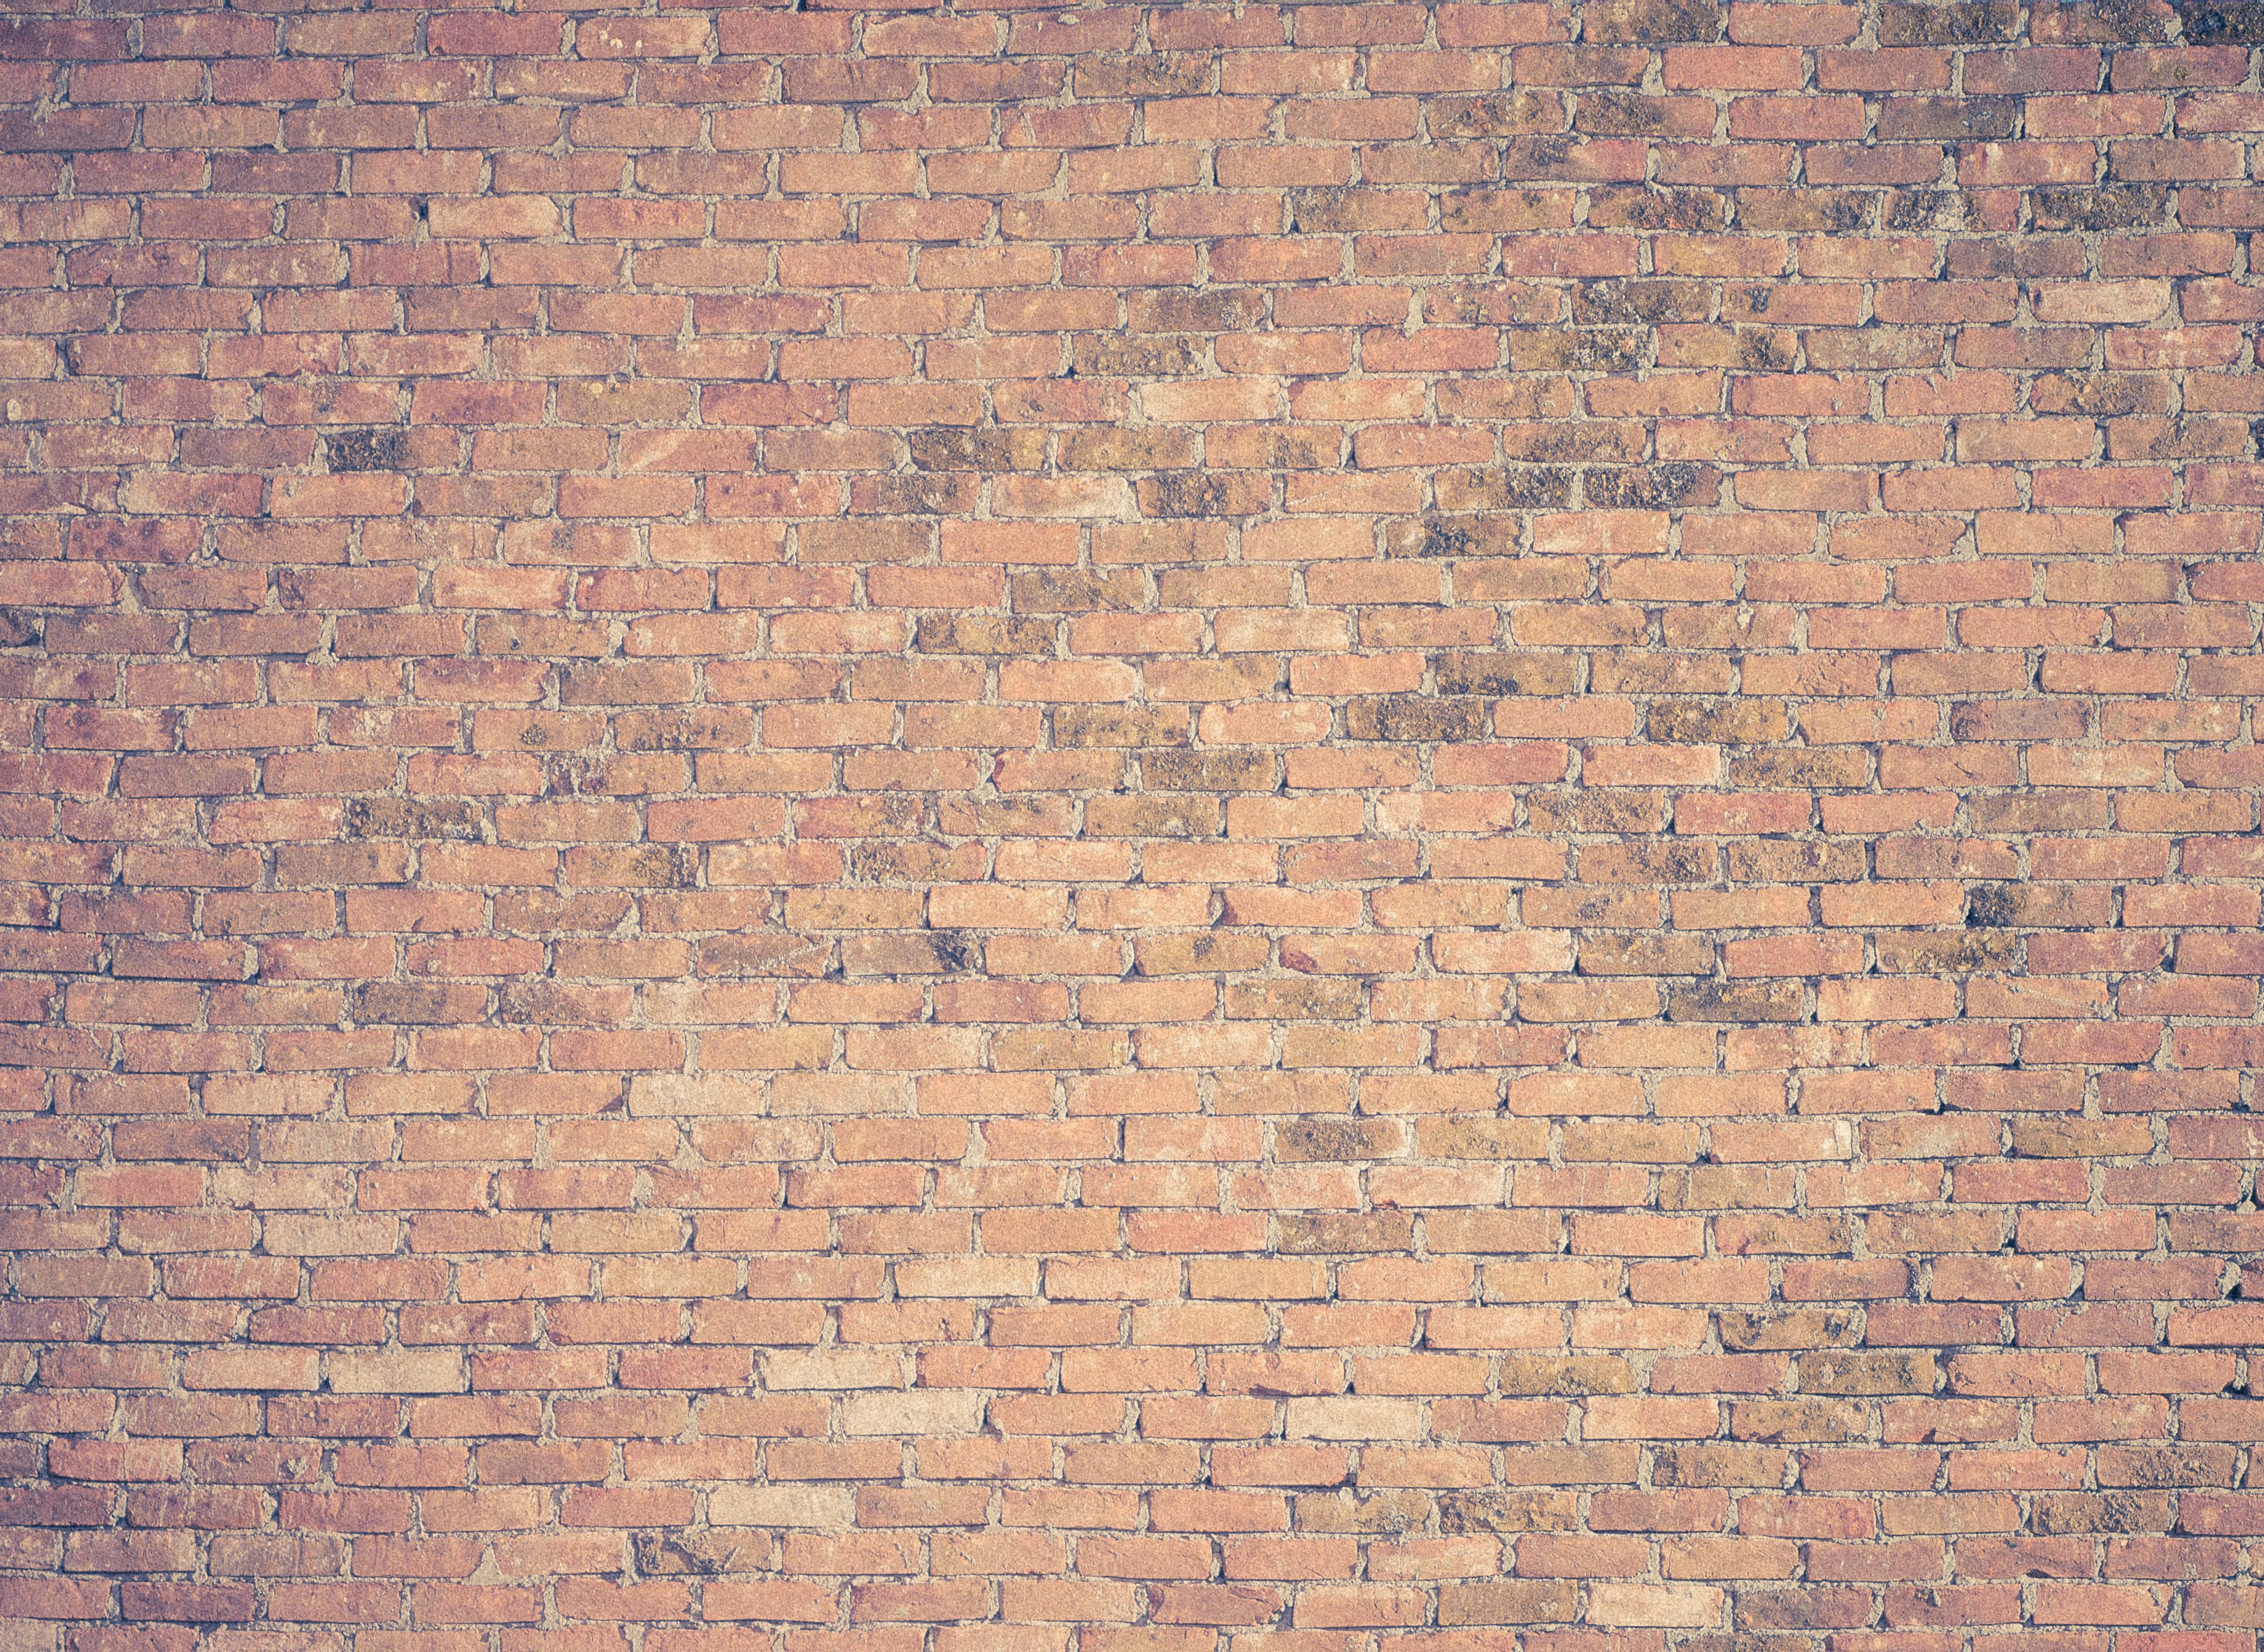 Red Brick Wall Photo By Shoot N Design Shootndesign On